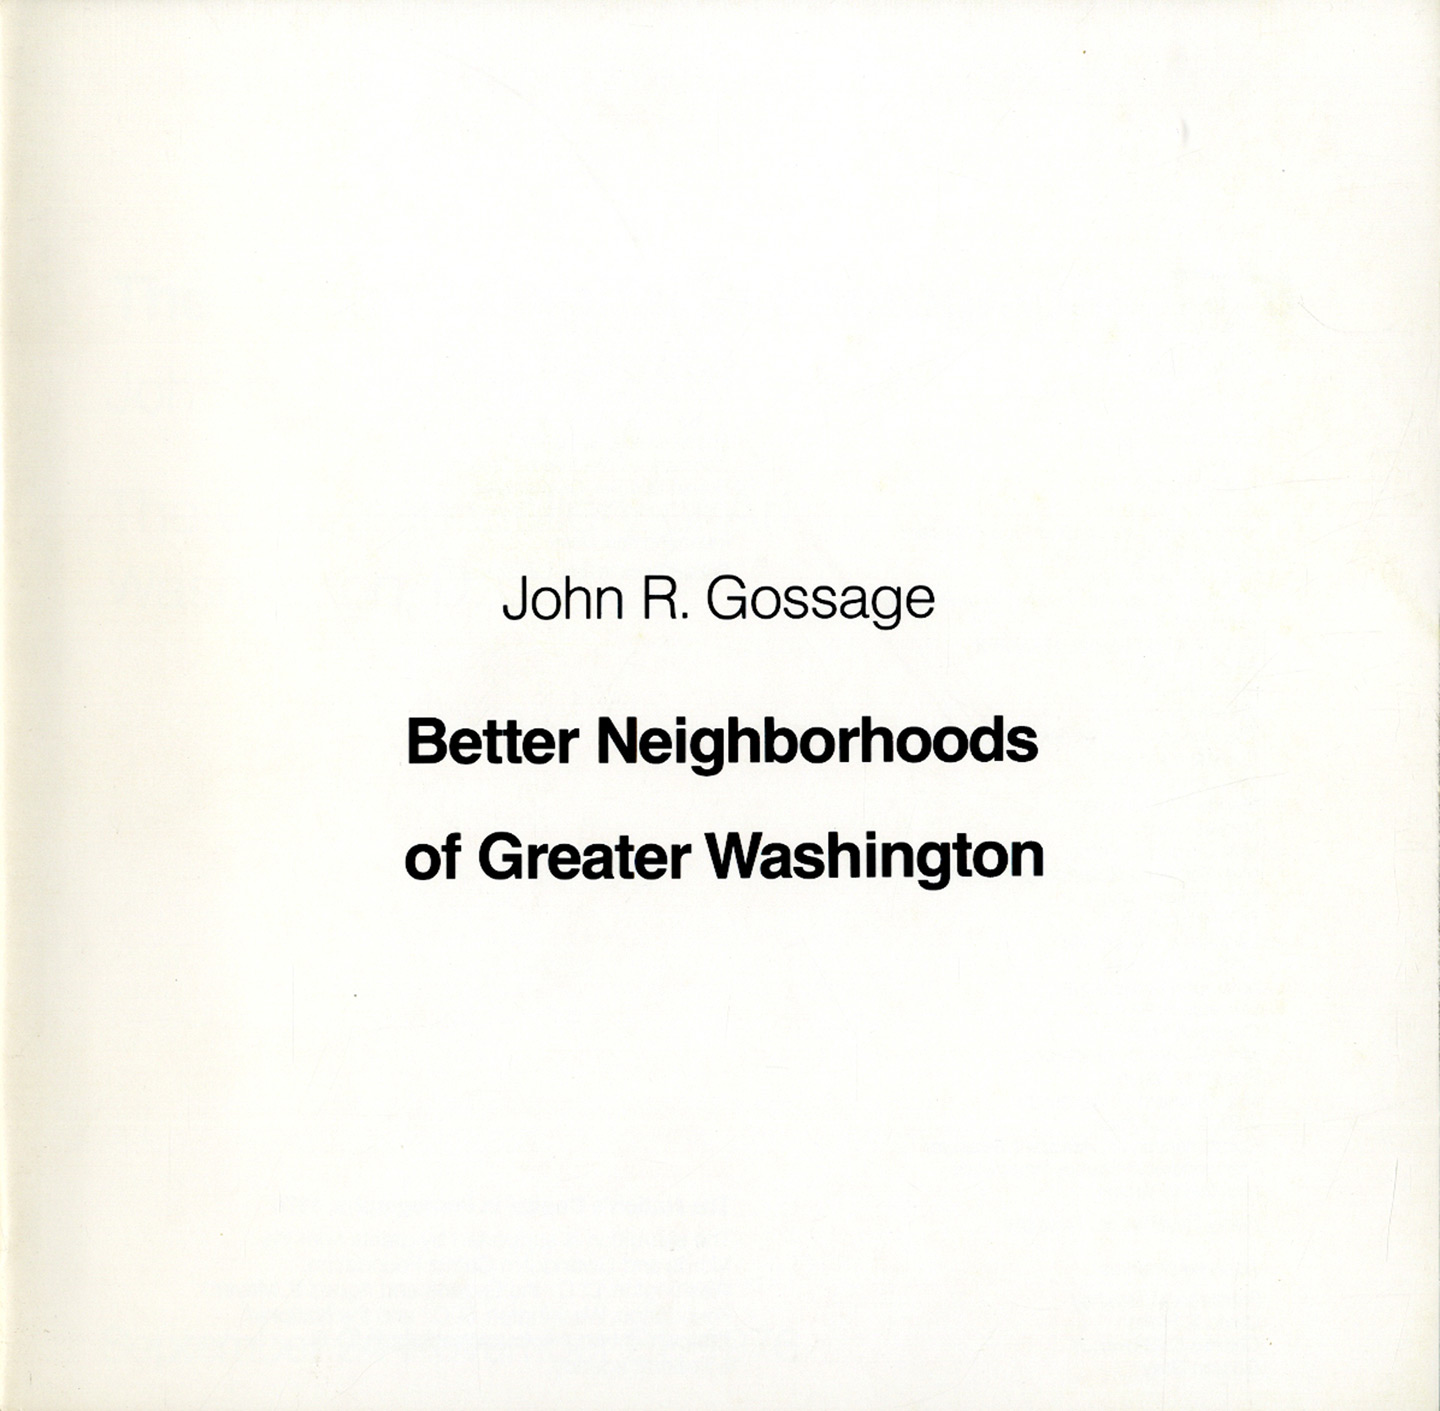 Photography at the Corcoran Series, The Nation's Capital in Photographs, 1976: John R. Gossage: Better Neighborhoods of Greater Washington